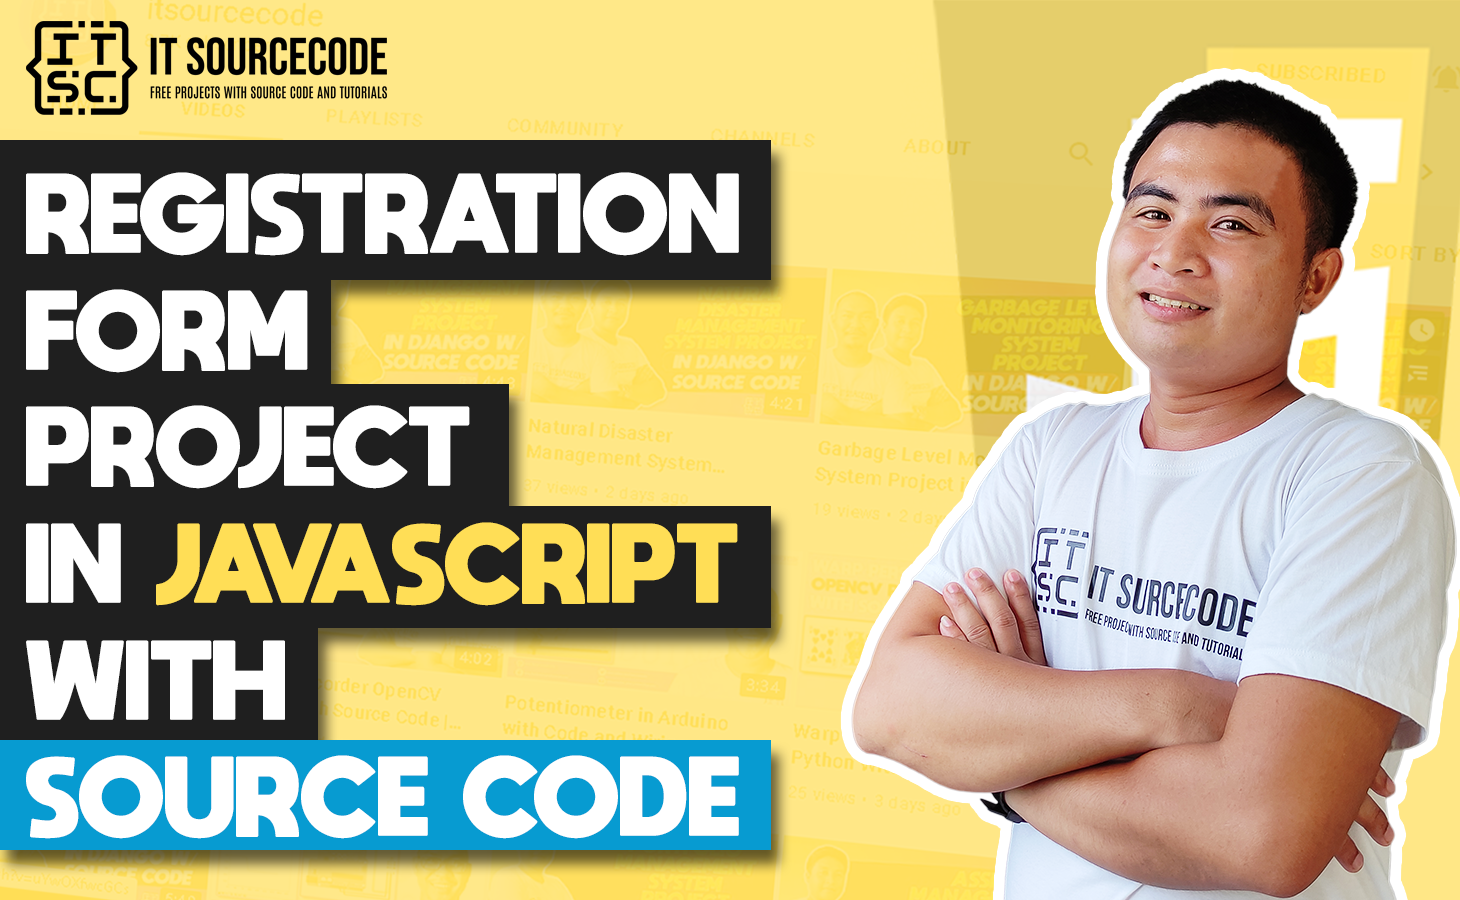 Registration Form In HTML With Javascript Validation With Source Code